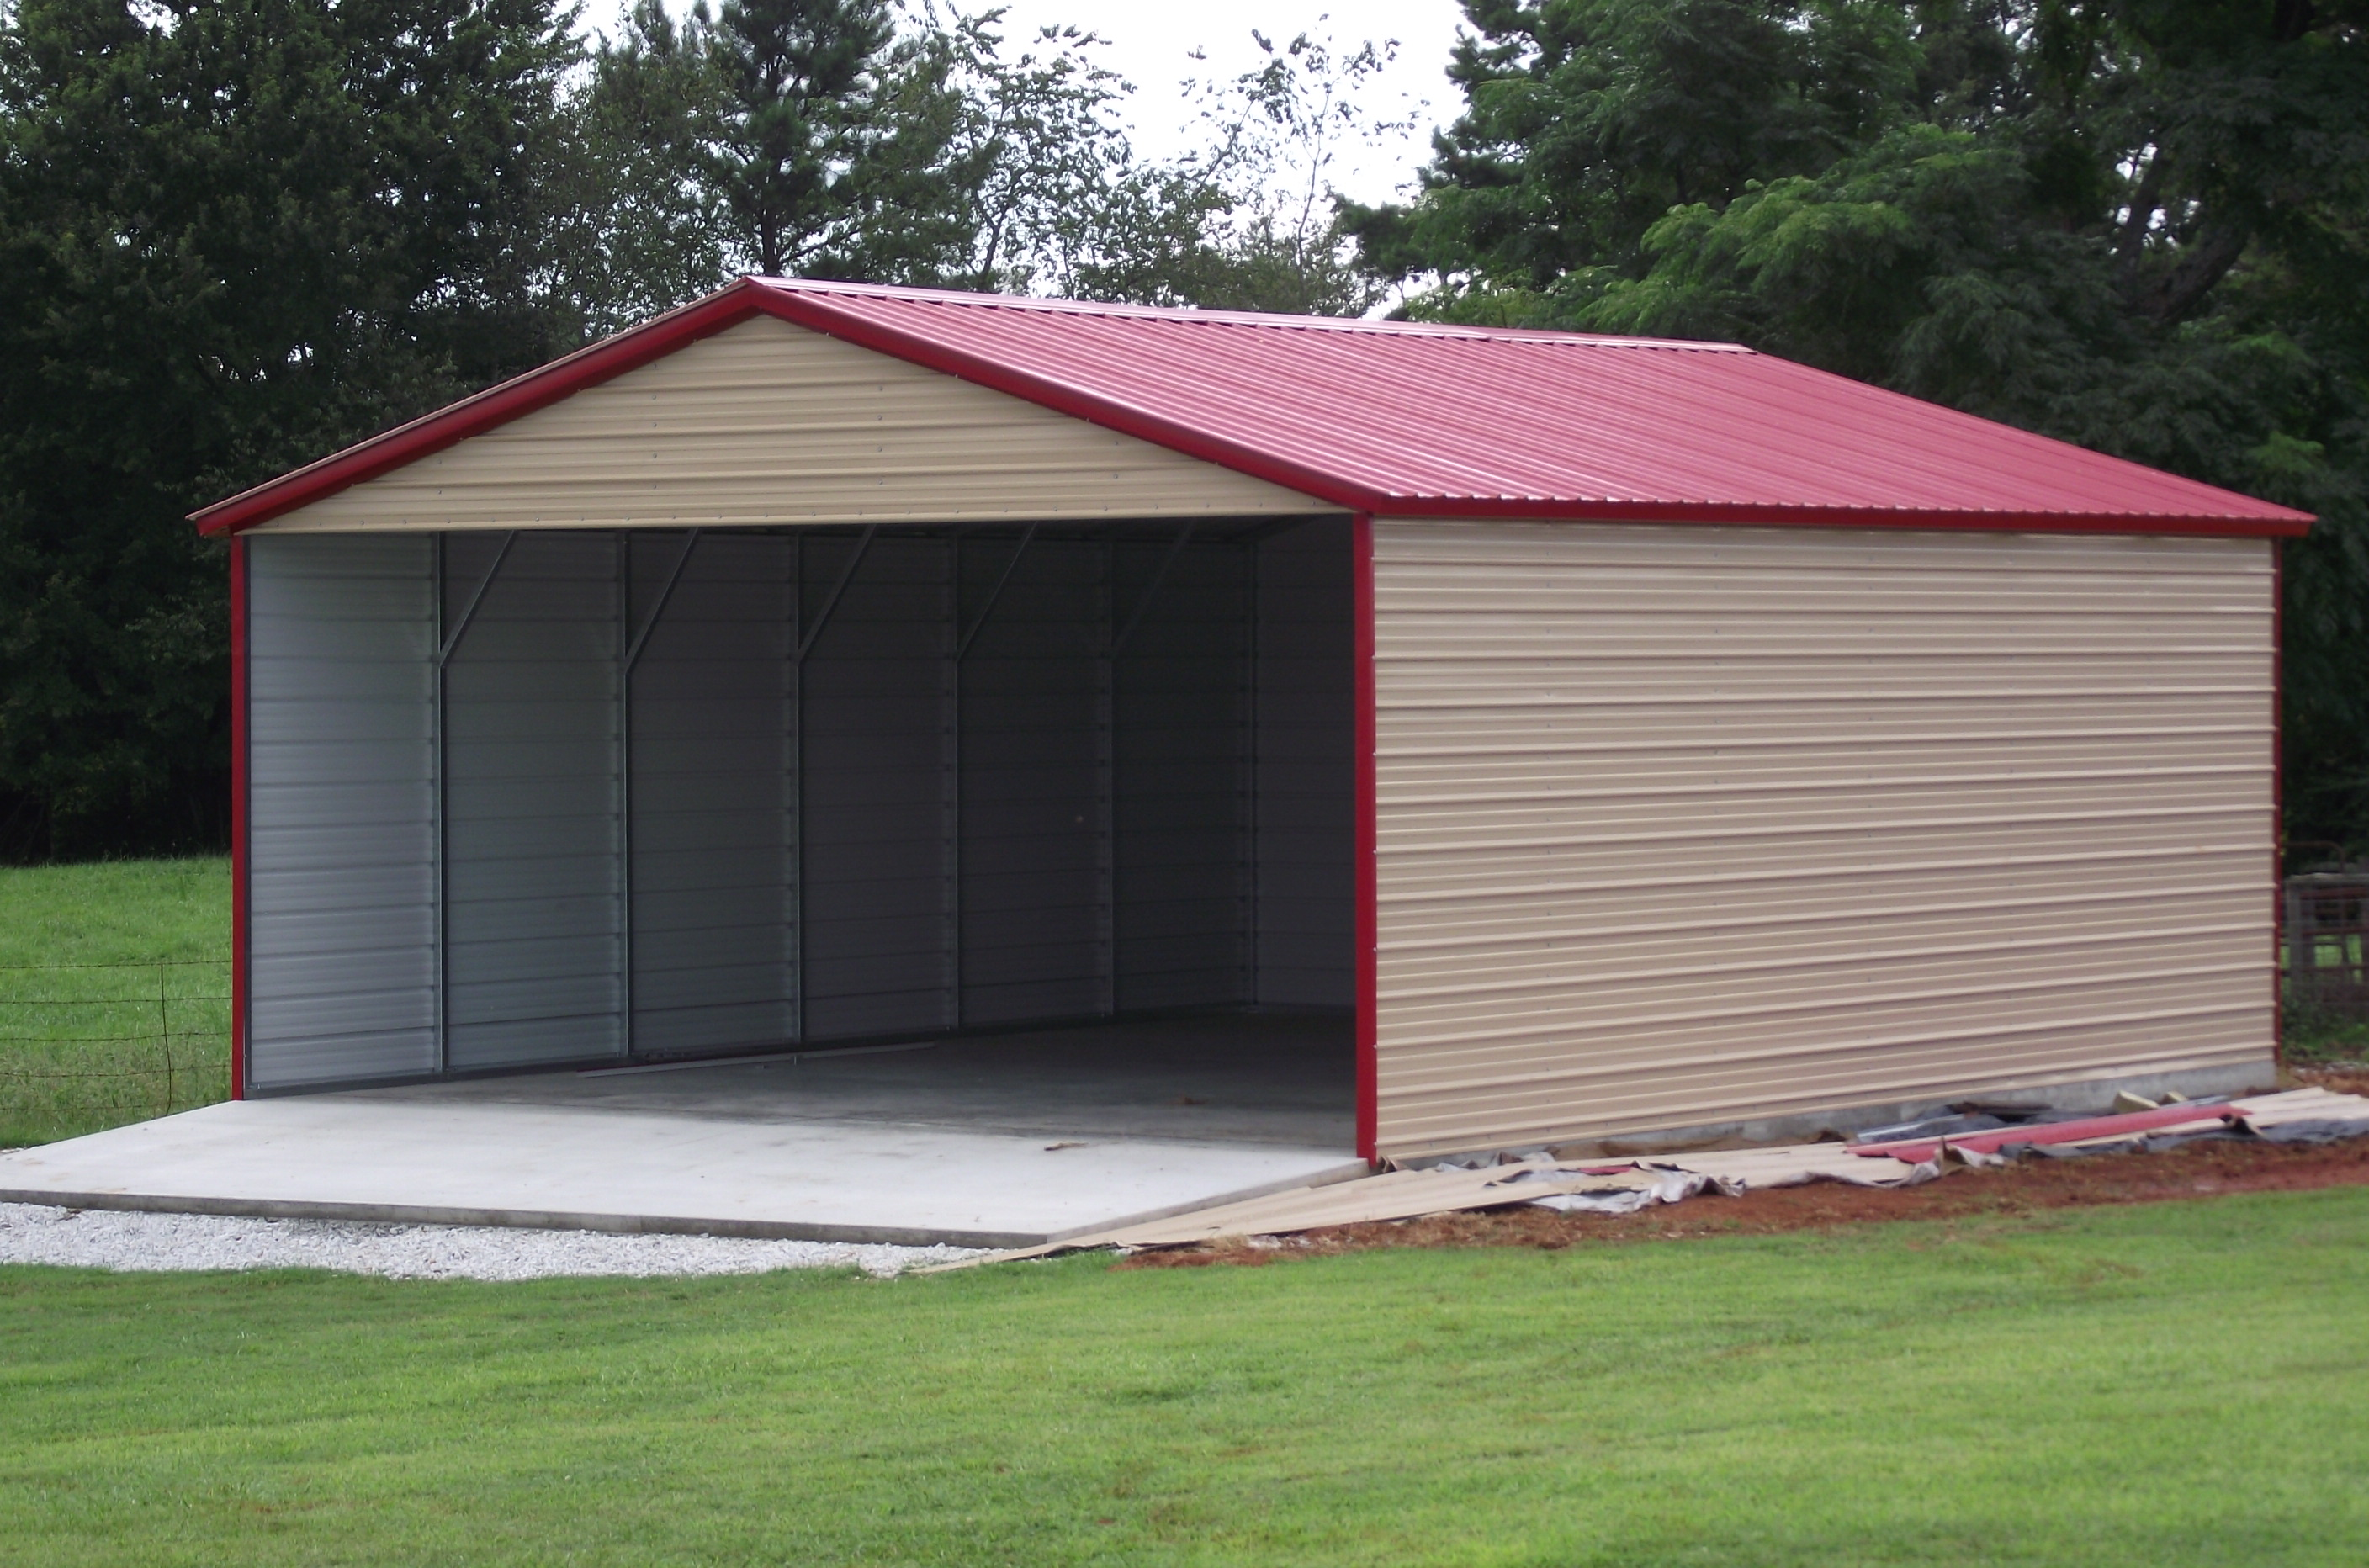 Aluminum Sheds For Sale Of Carports Arizona Az Metal Carports Arizona Az